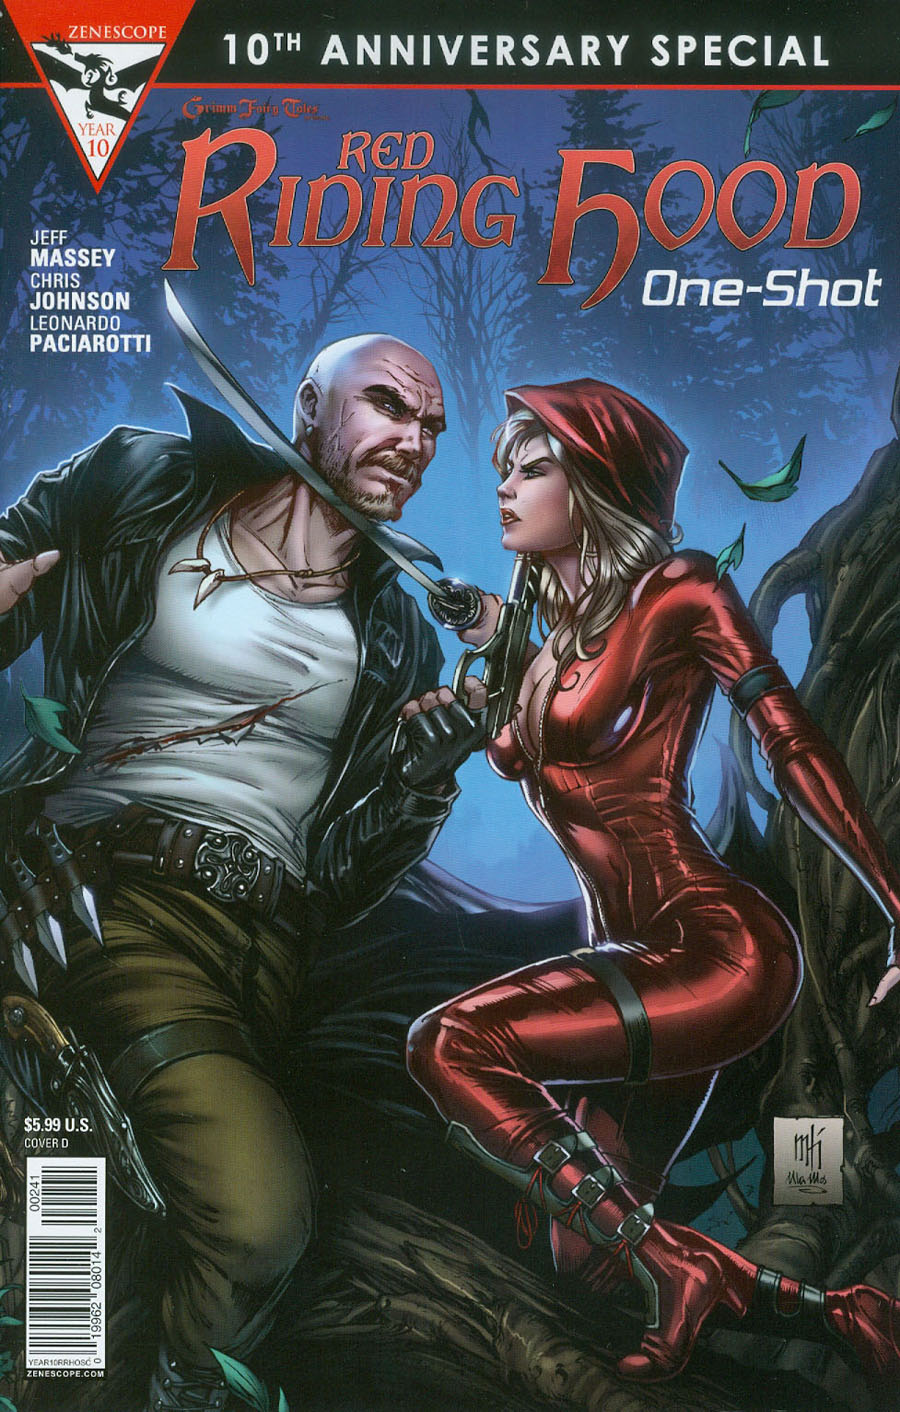 Grimm Fairy Tales Presents 10th Anniversary Special #2 Red Riding Hood Cover D Mike Krome